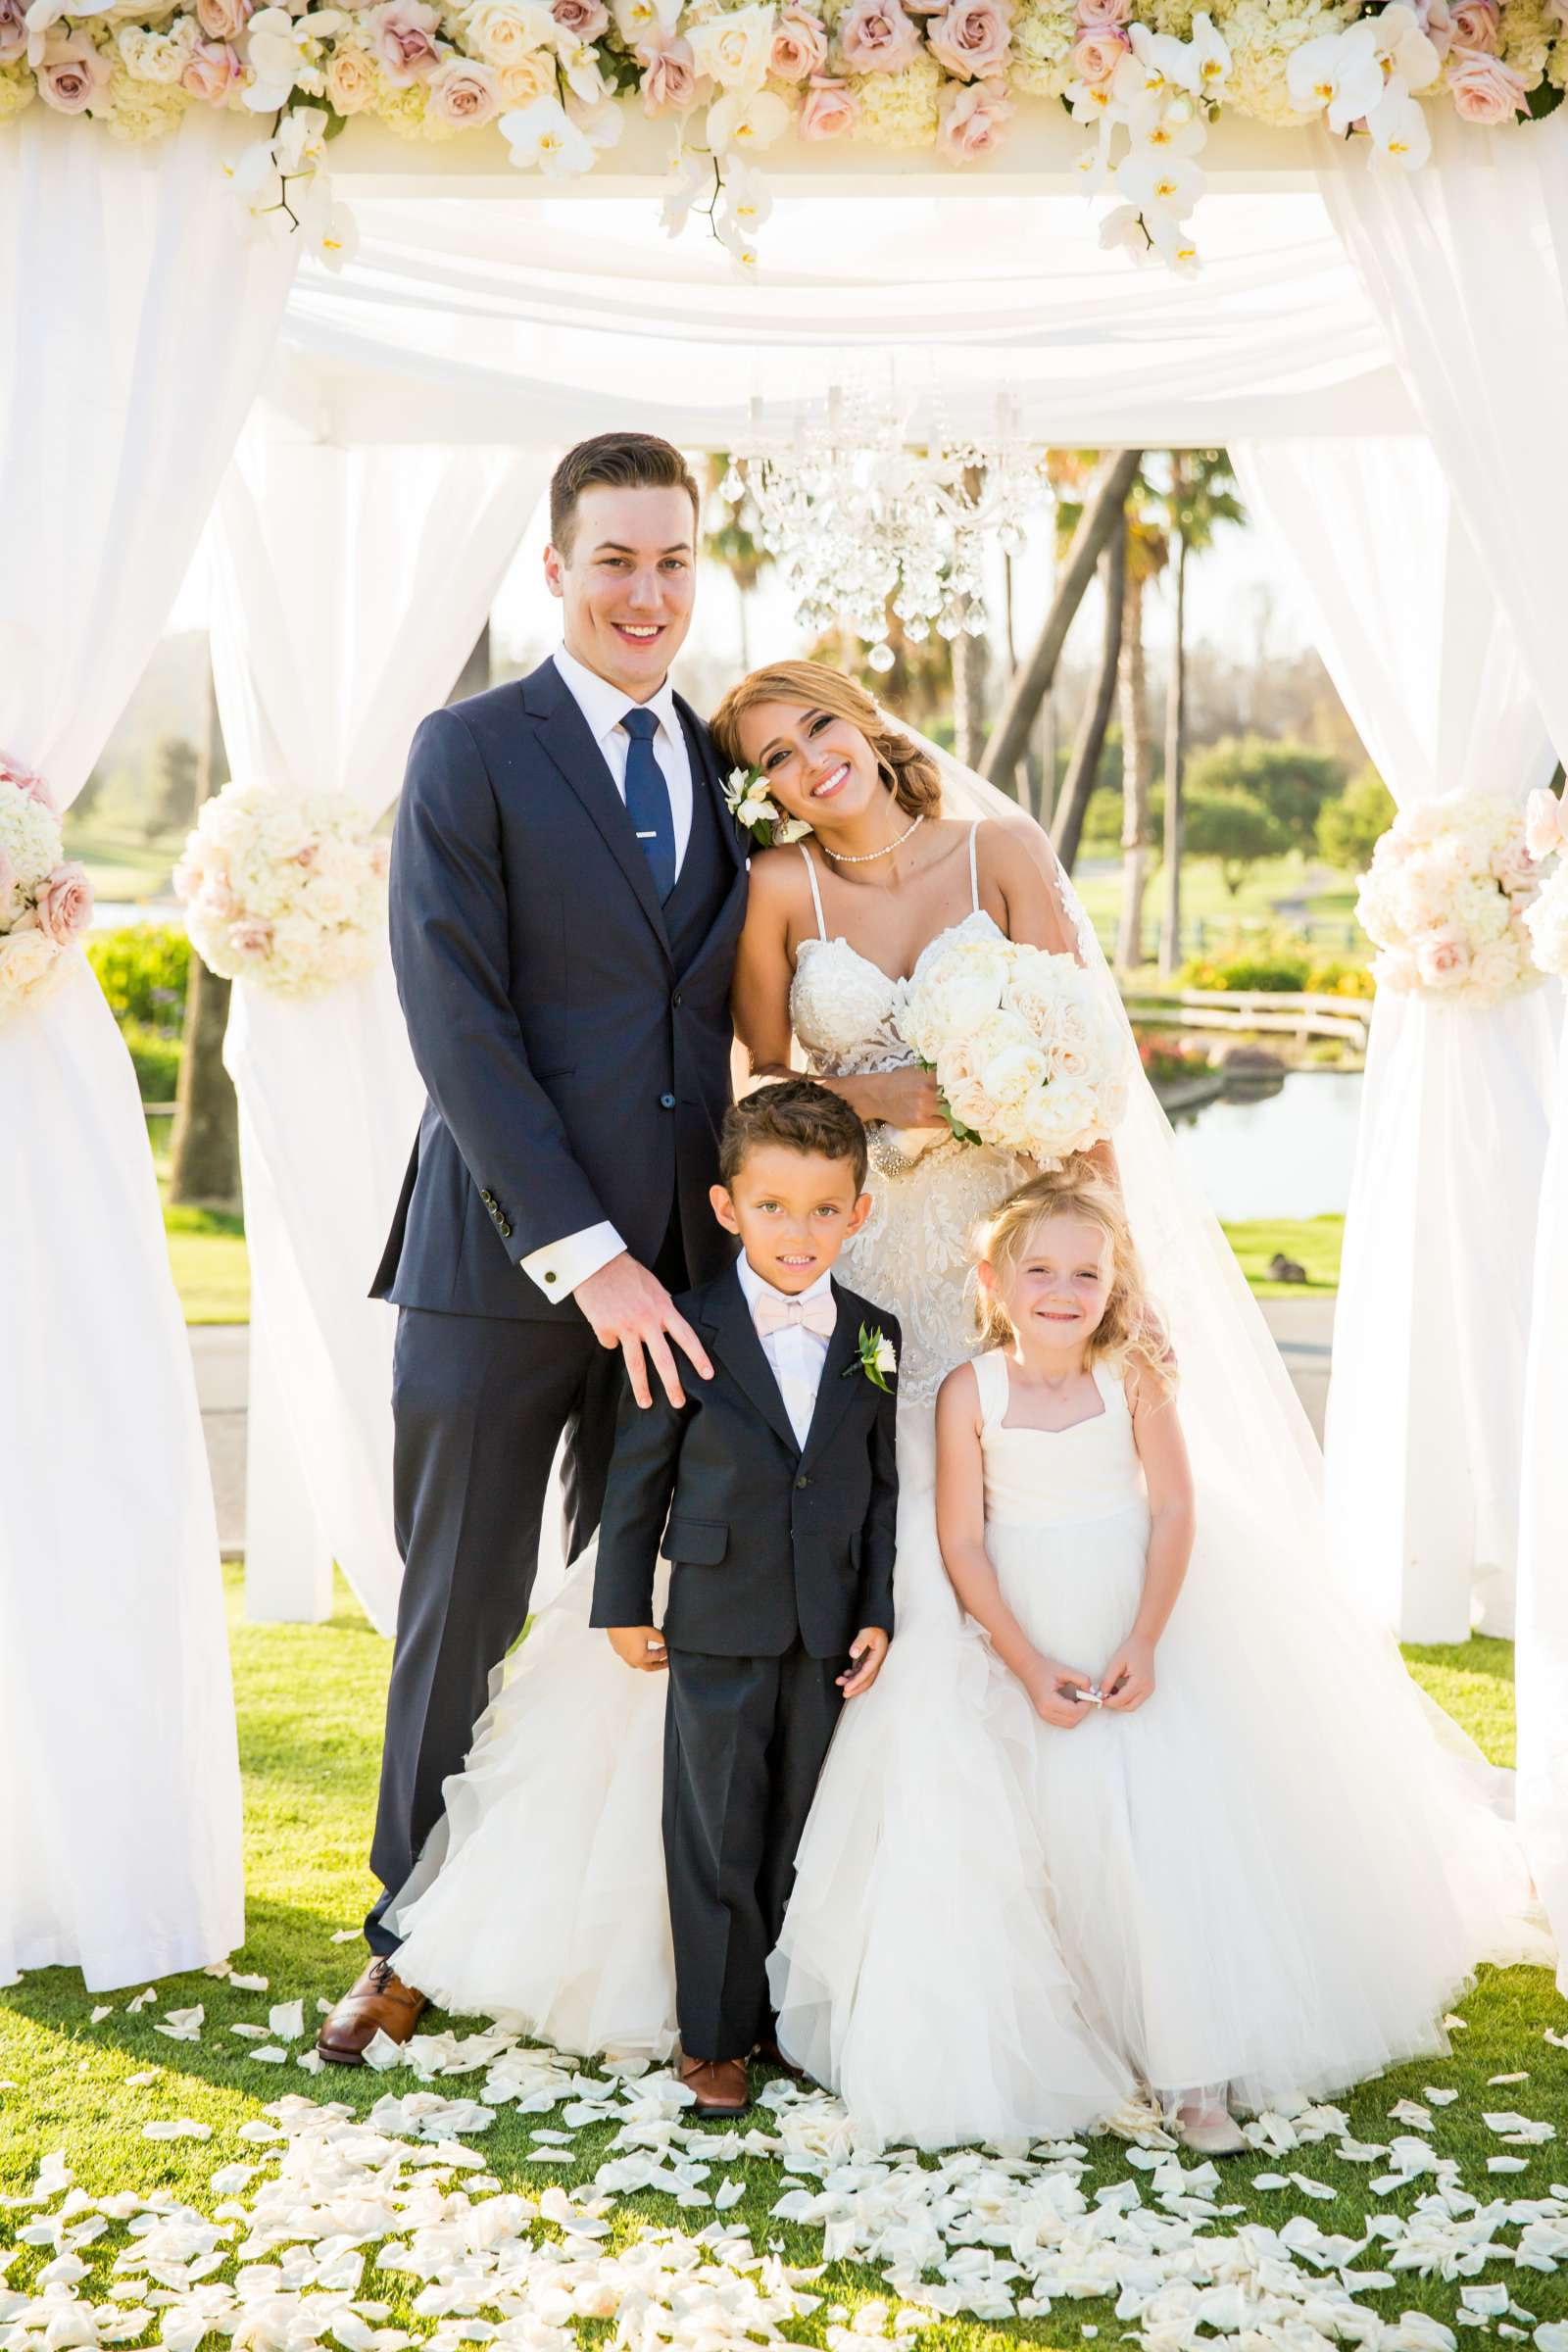 Fairbanks Ranch Country Club Wedding coordinated by Monarch Weddings, Gabriella and Kyle Wedding Photo #99 by True Photography